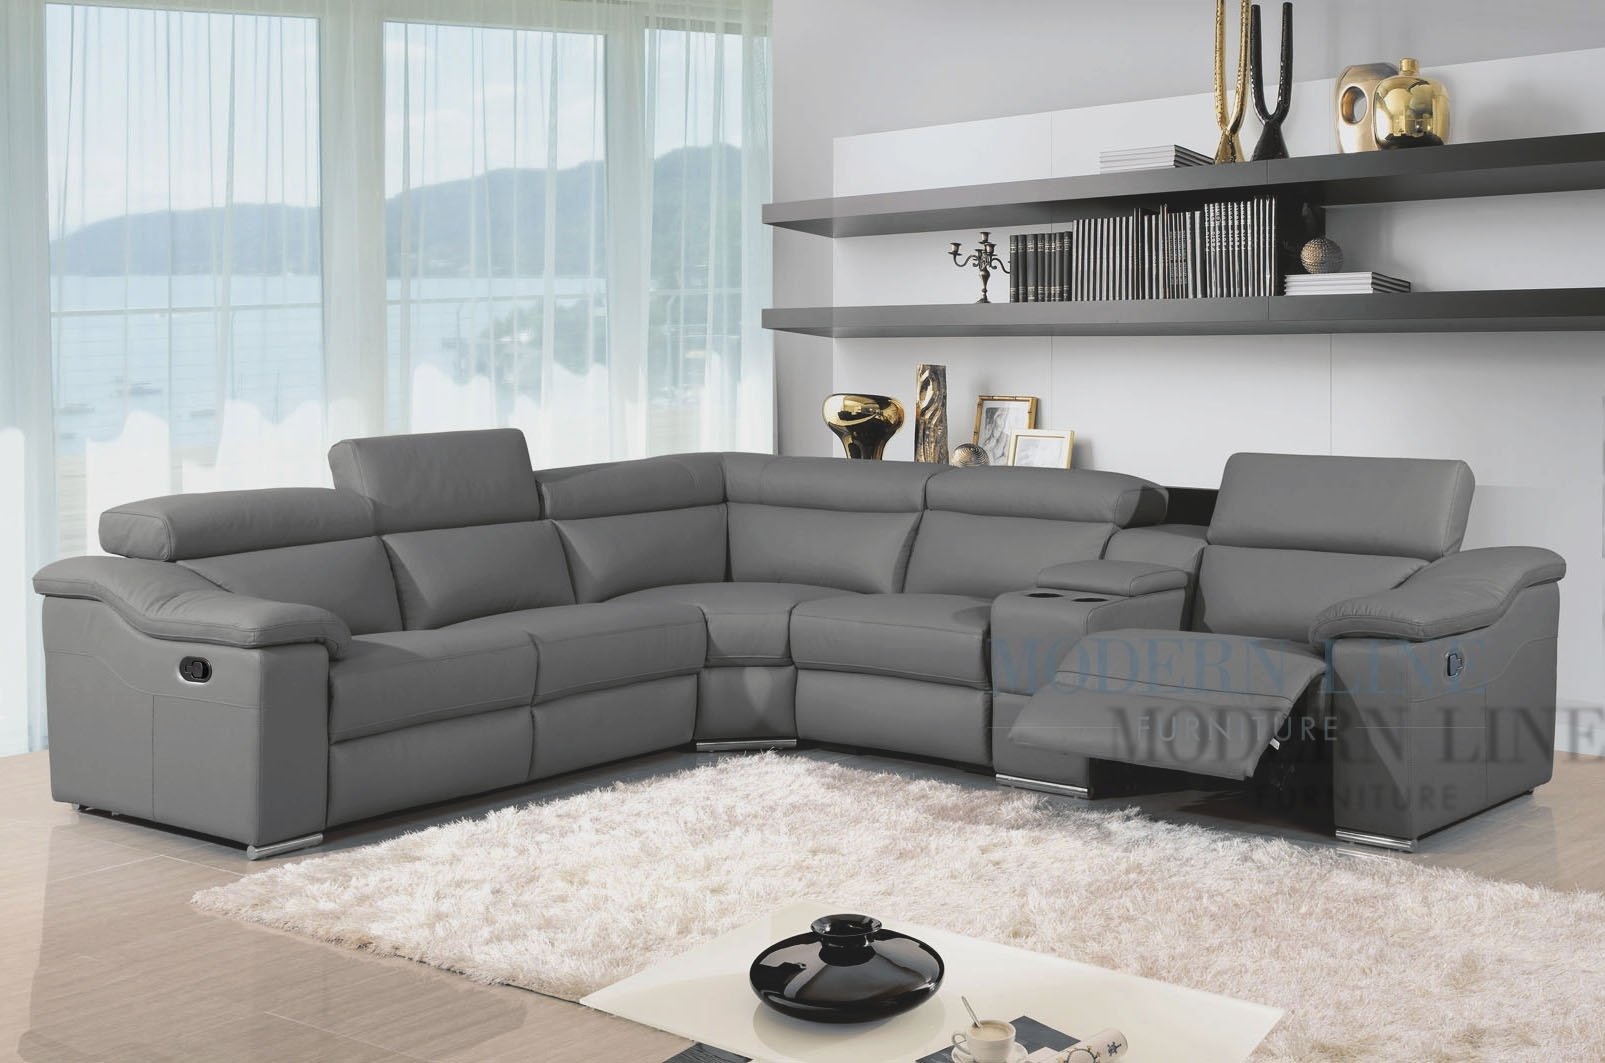 Modern Reclining Sectional Sofas – Cleanupflorida In Vancouver Bc Sectional Sofas (View 9 of 10)